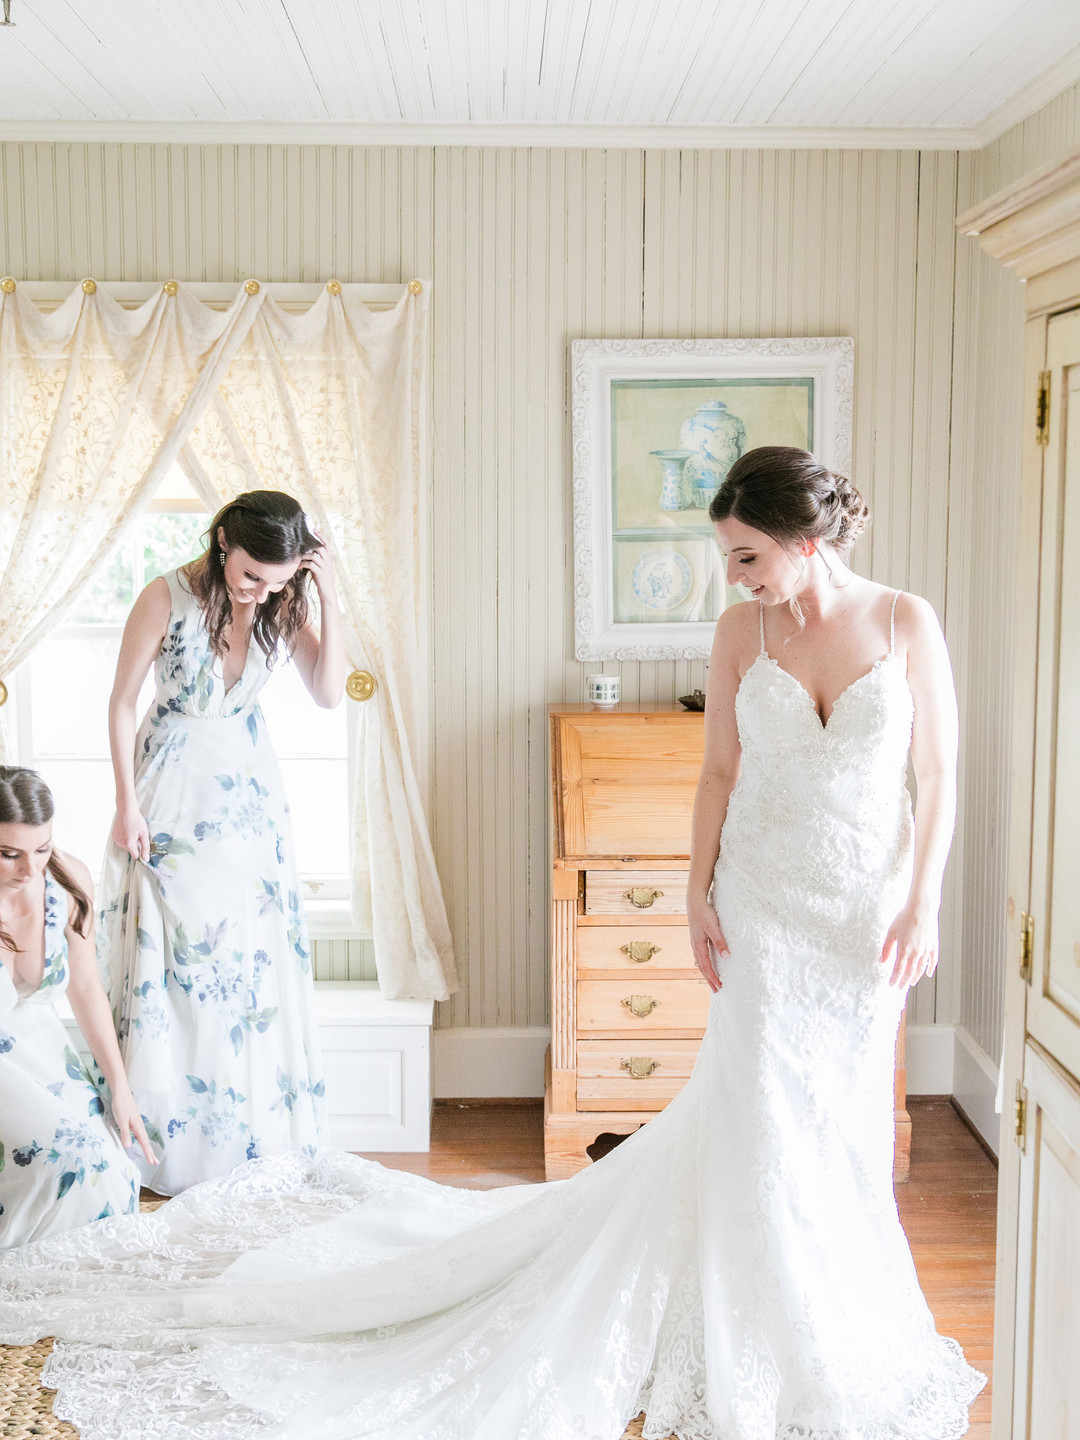 Getting Ready - Wedding Dress - Photo by Dana Cubbage Weddings